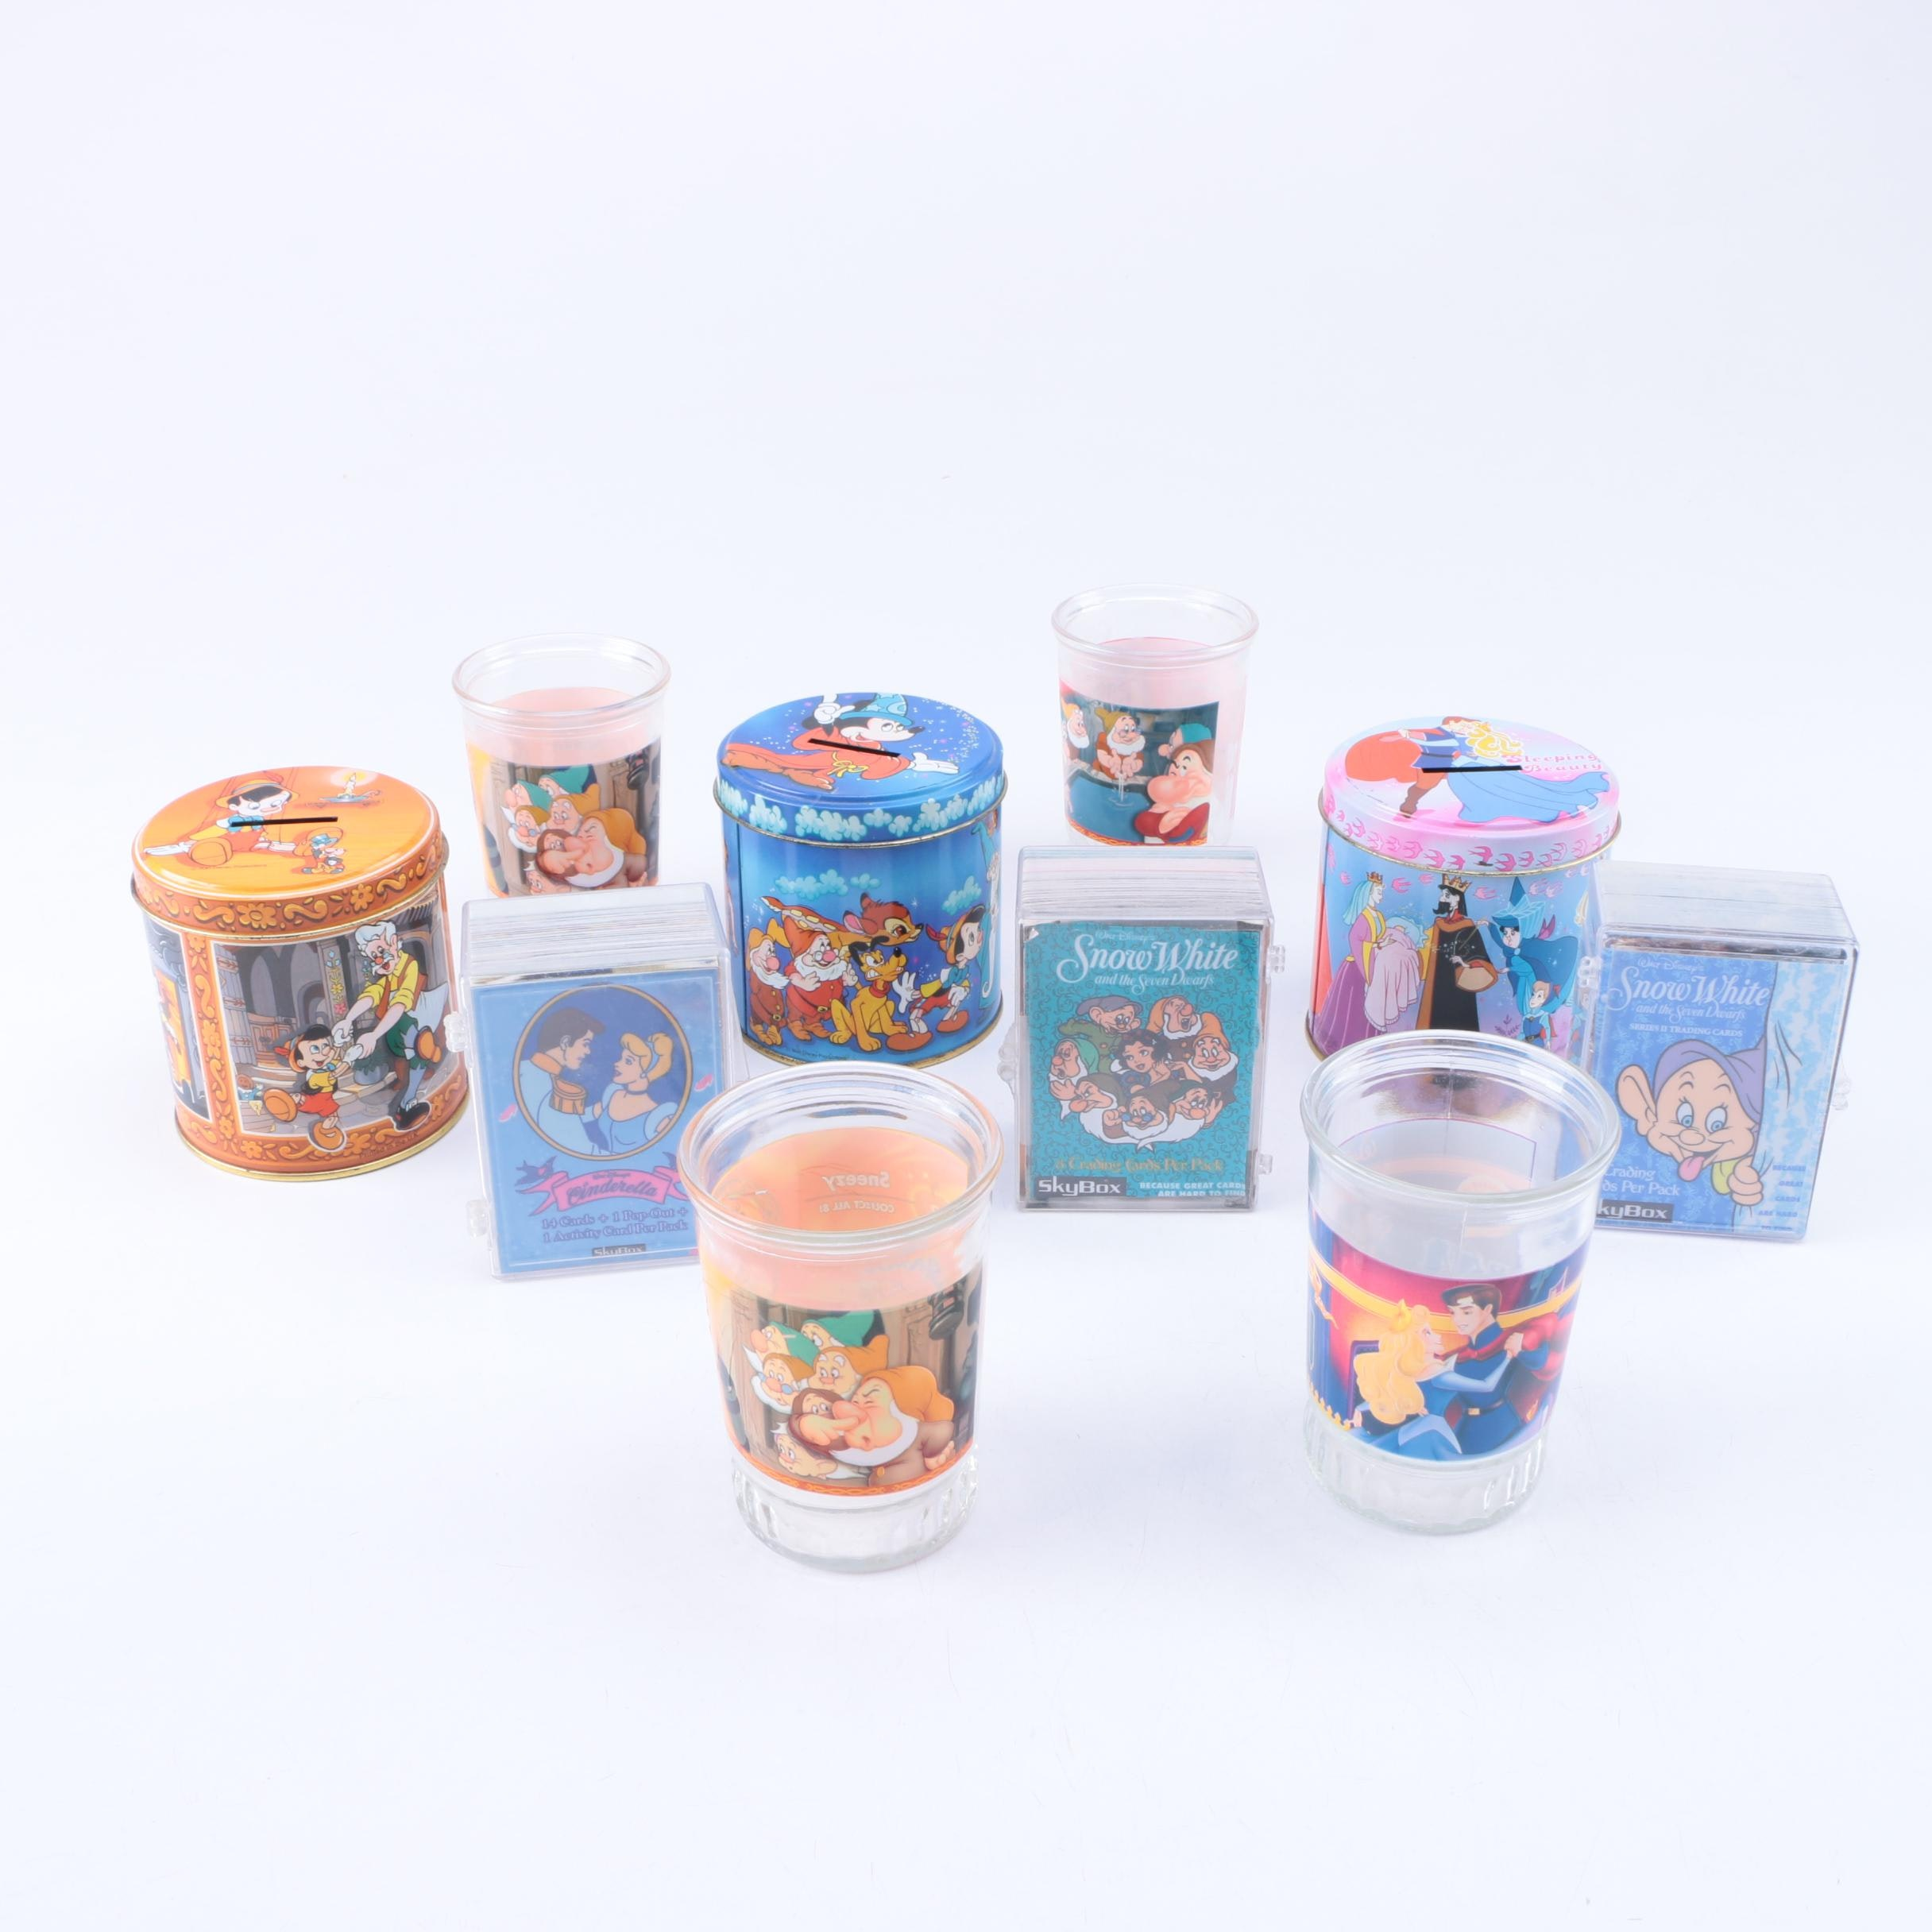 Walt Disney Coin Banks, Trading Cards and Other Memorabilia